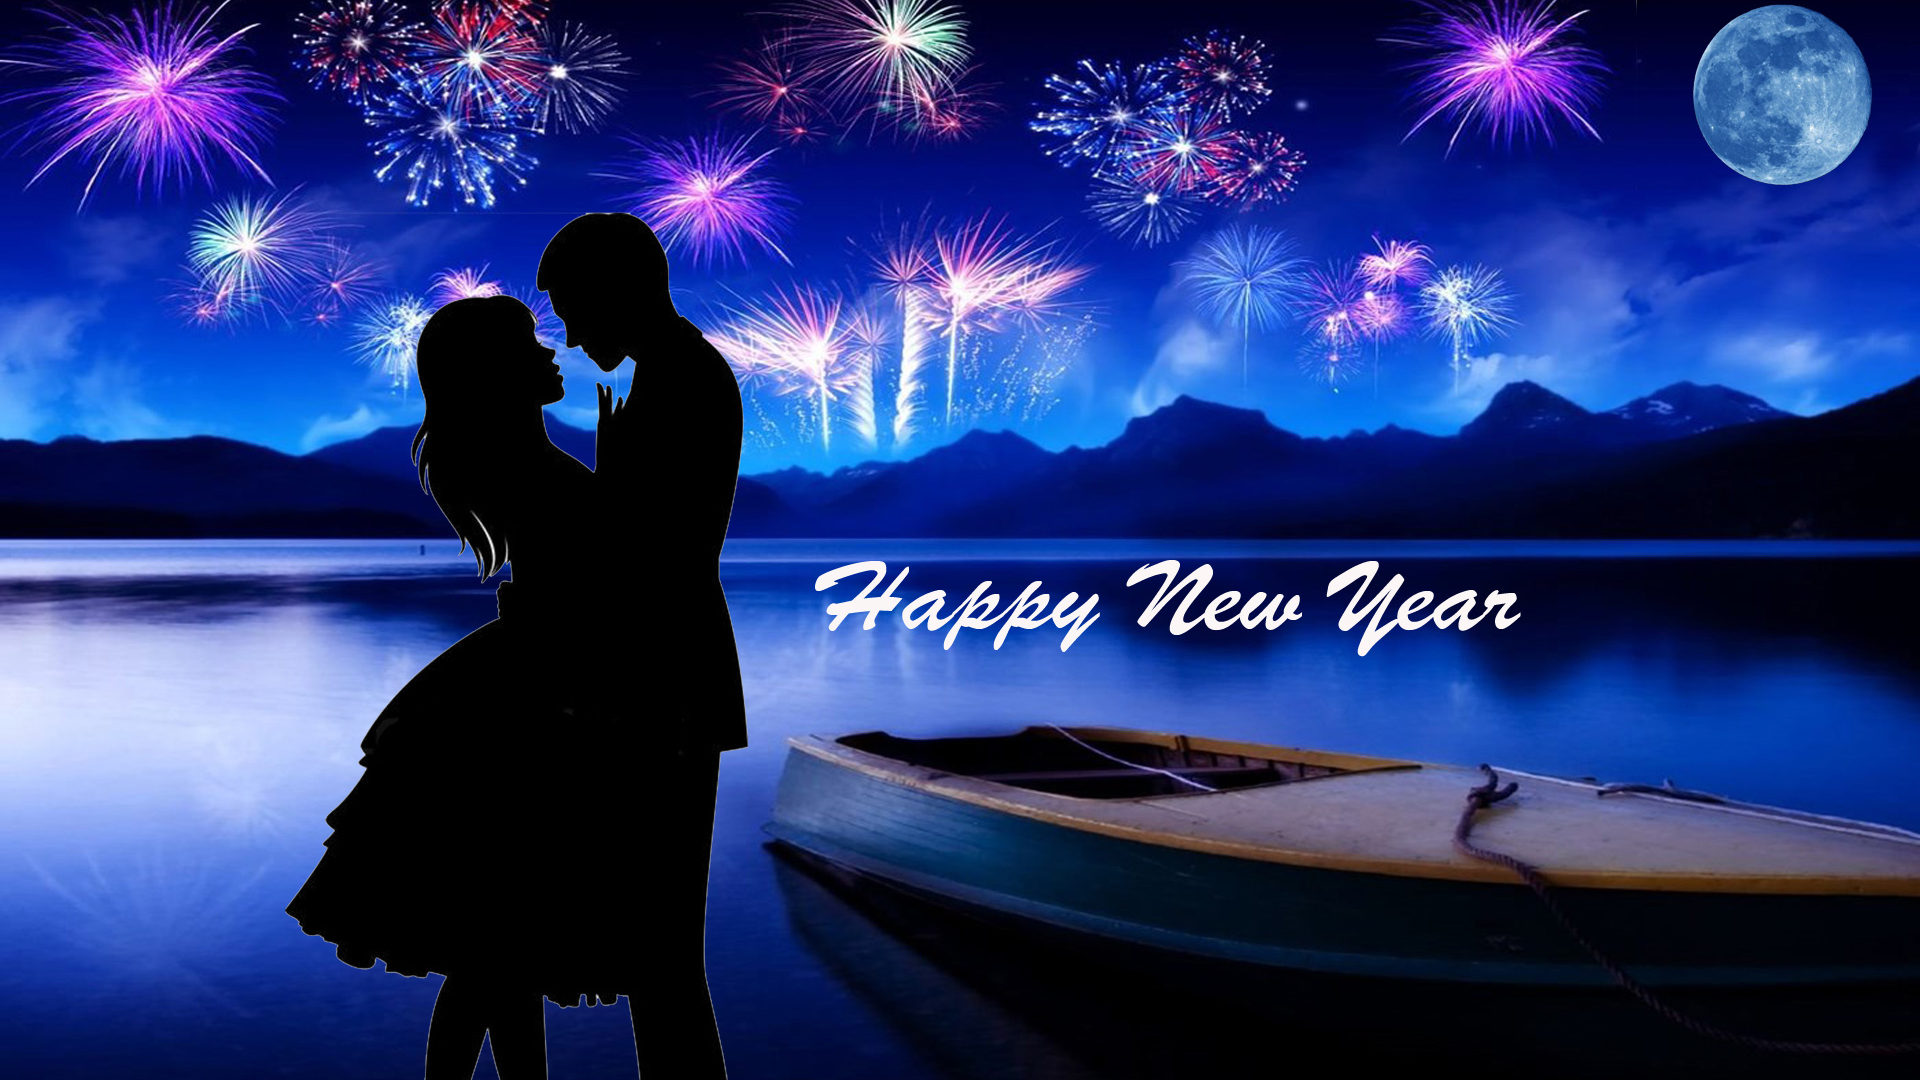 Happy New Year 2020 I Love You Greeting Cards Christmas Desktop Hd 1920x1080